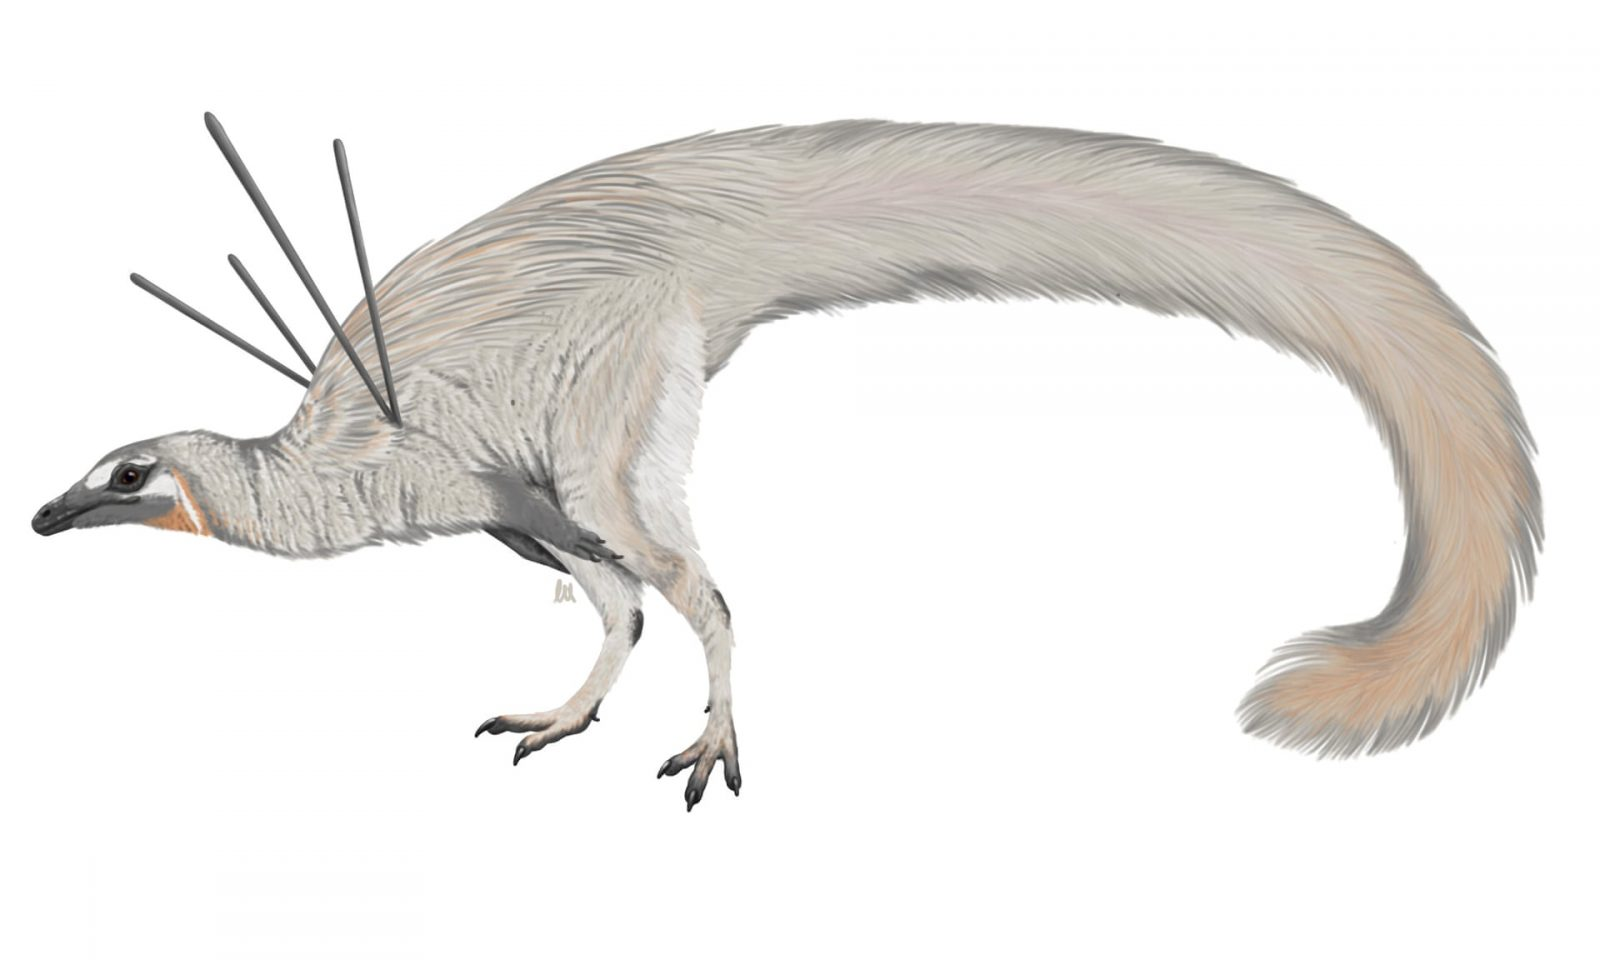 Image: Artist rendering of the newly discovered Ubirajara jubatus - a white bird-like creature with a long tail.